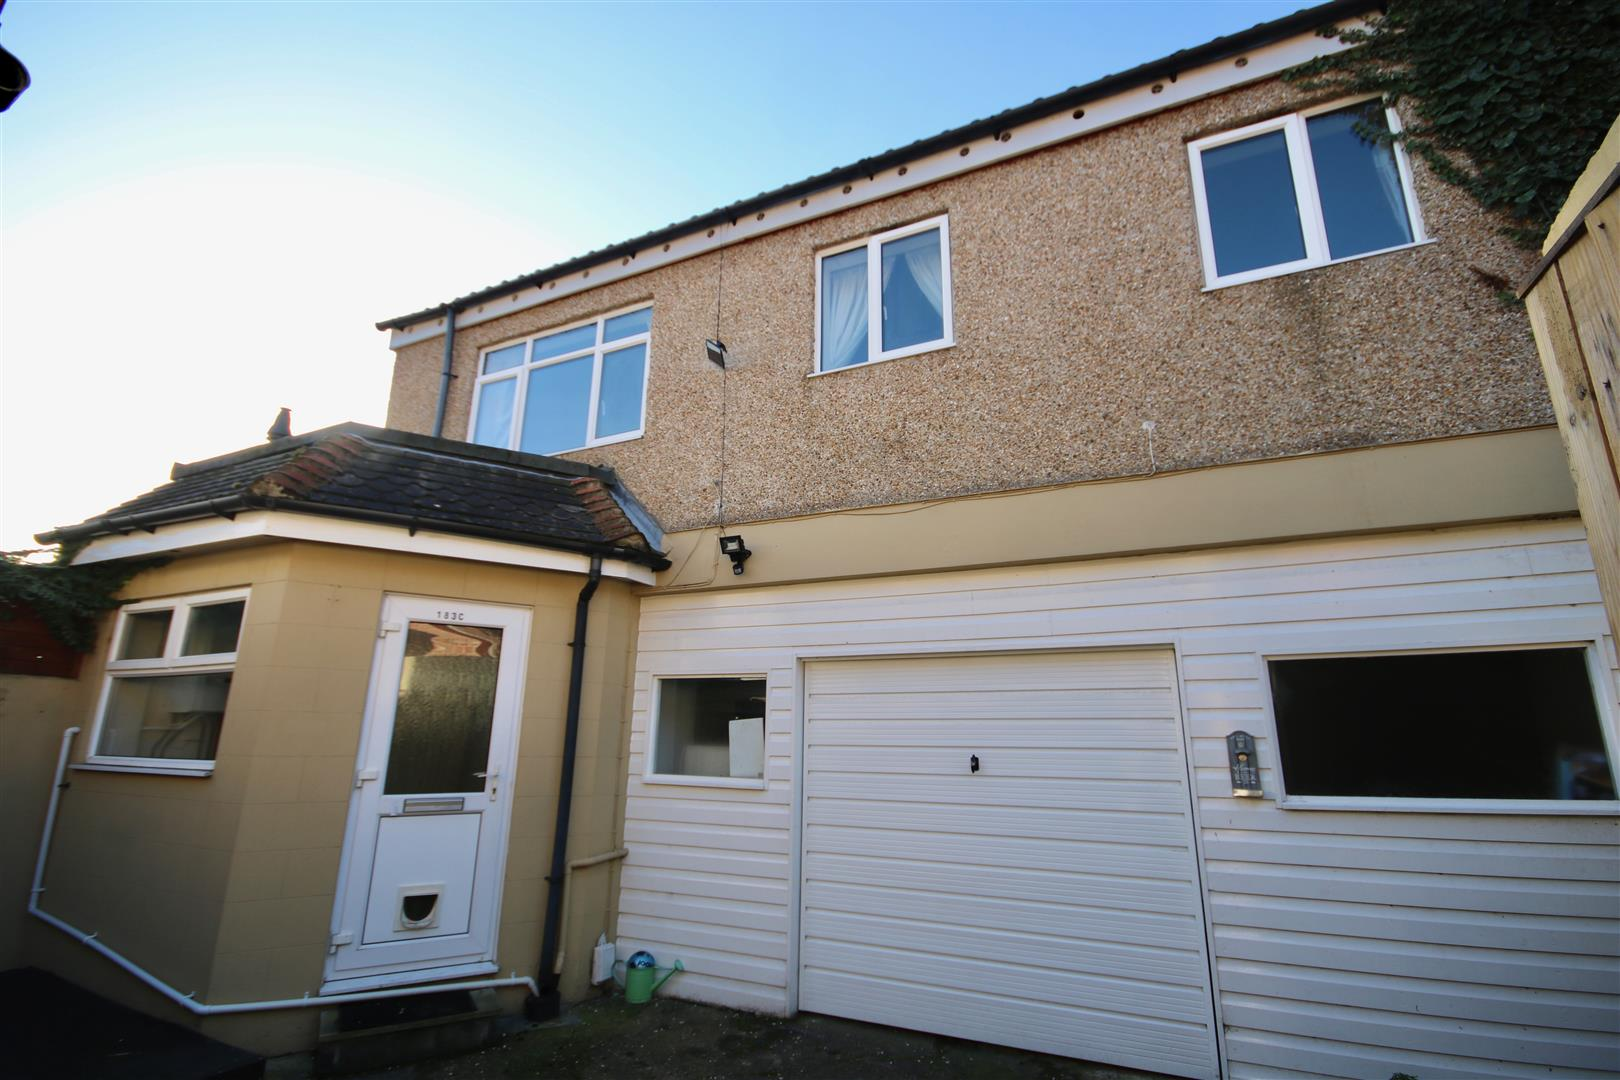 2 Bedrooms Detached House for sale in Landguard Road, EASTNEY, Southsea, Portsmouth, Hampshire